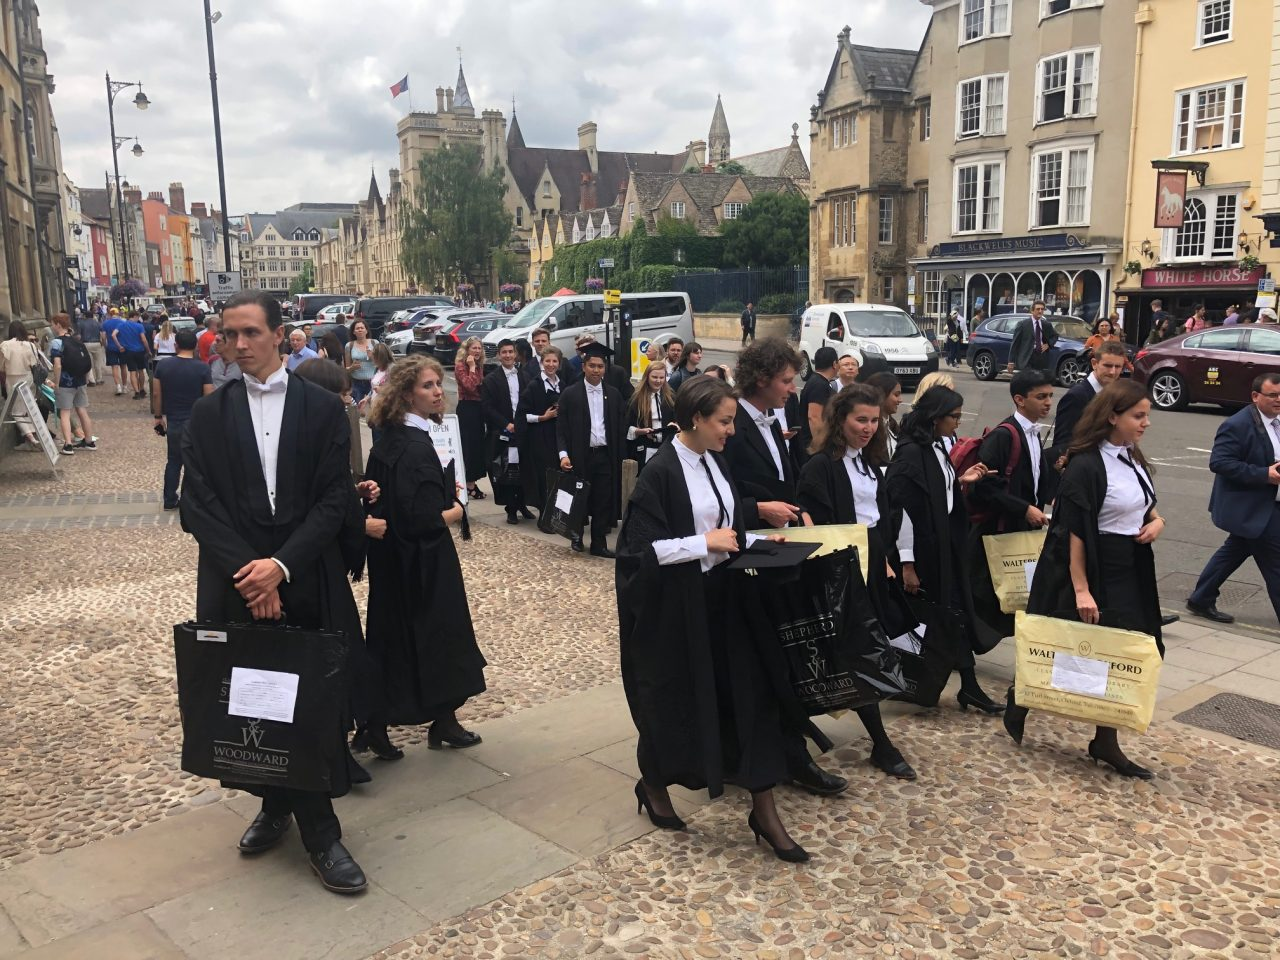 BM students gather outside the Sheldonian ahead of their graduation.